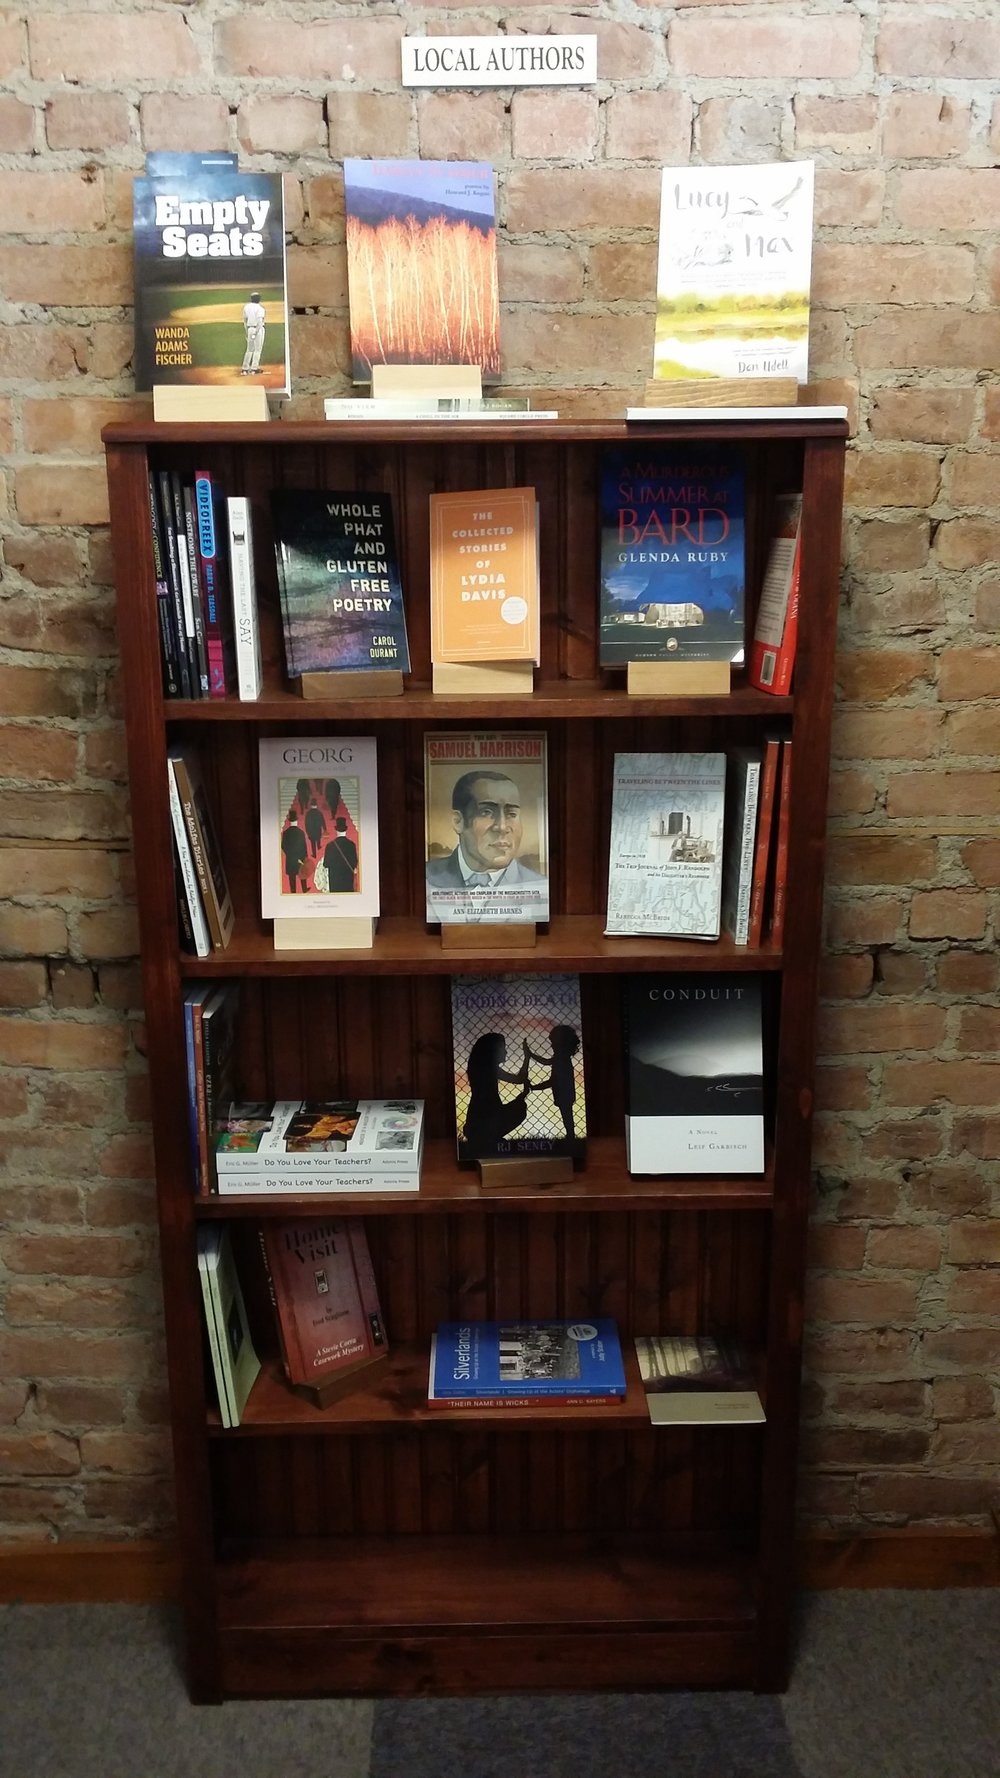 Losing Humanity 1 - Finding Death, at the Chatham Bookstore